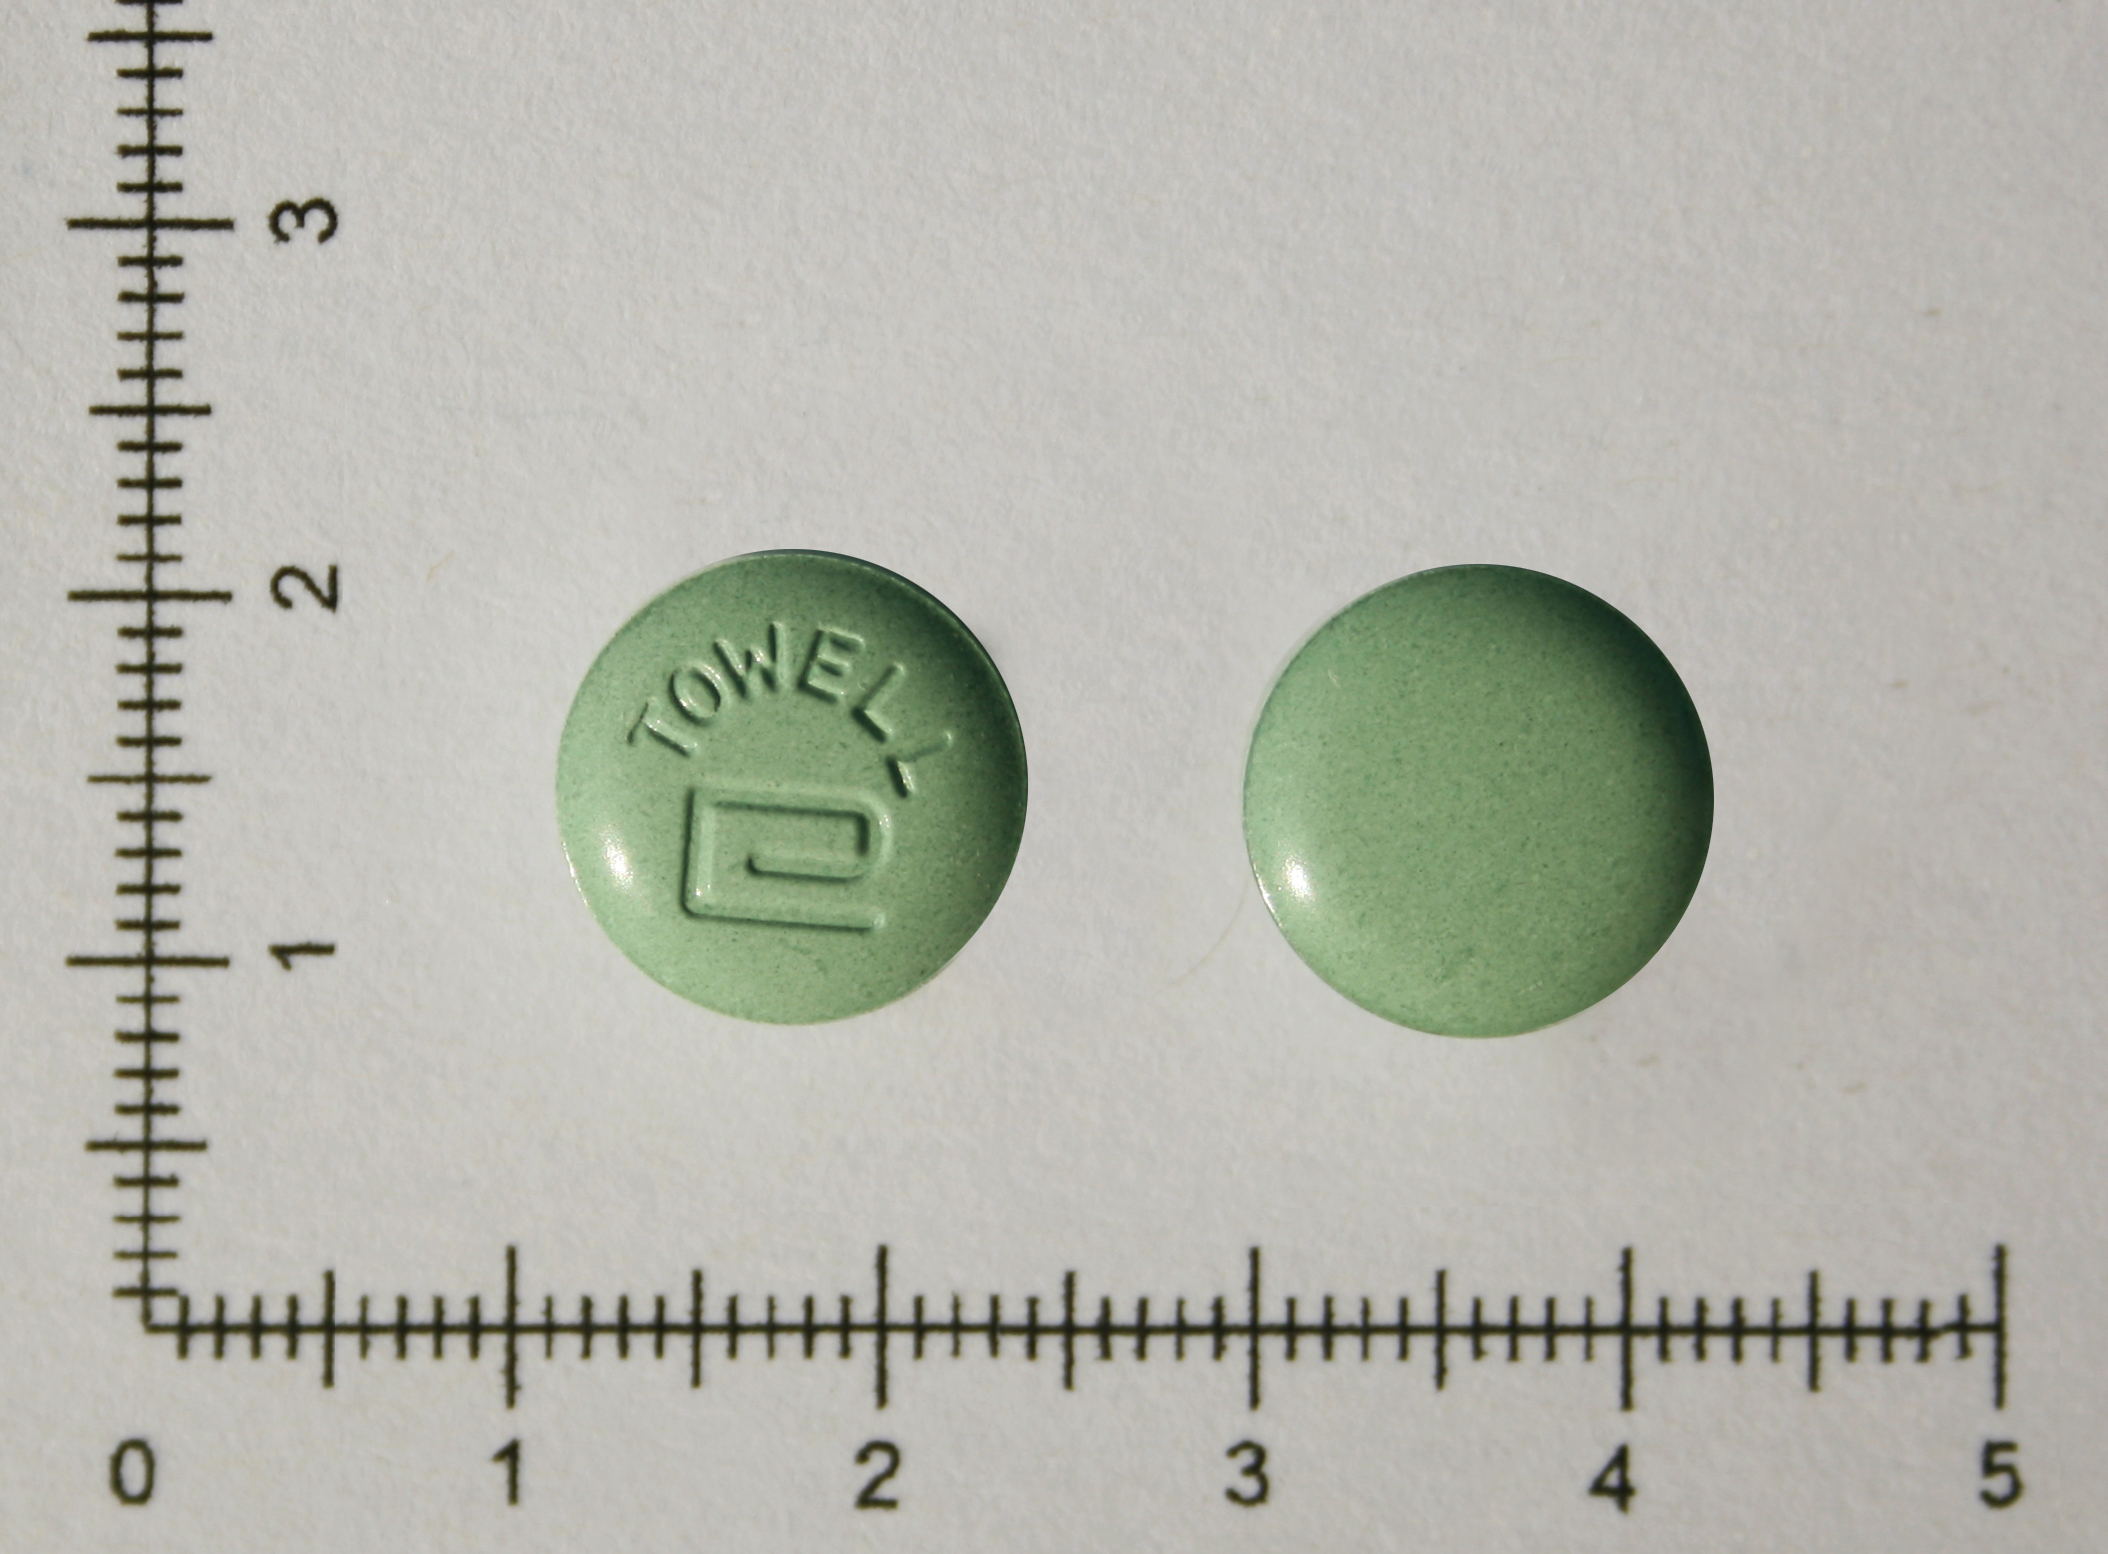 '永勝' 滋胃錠|TOWELL TABLETS 'EVEREST'